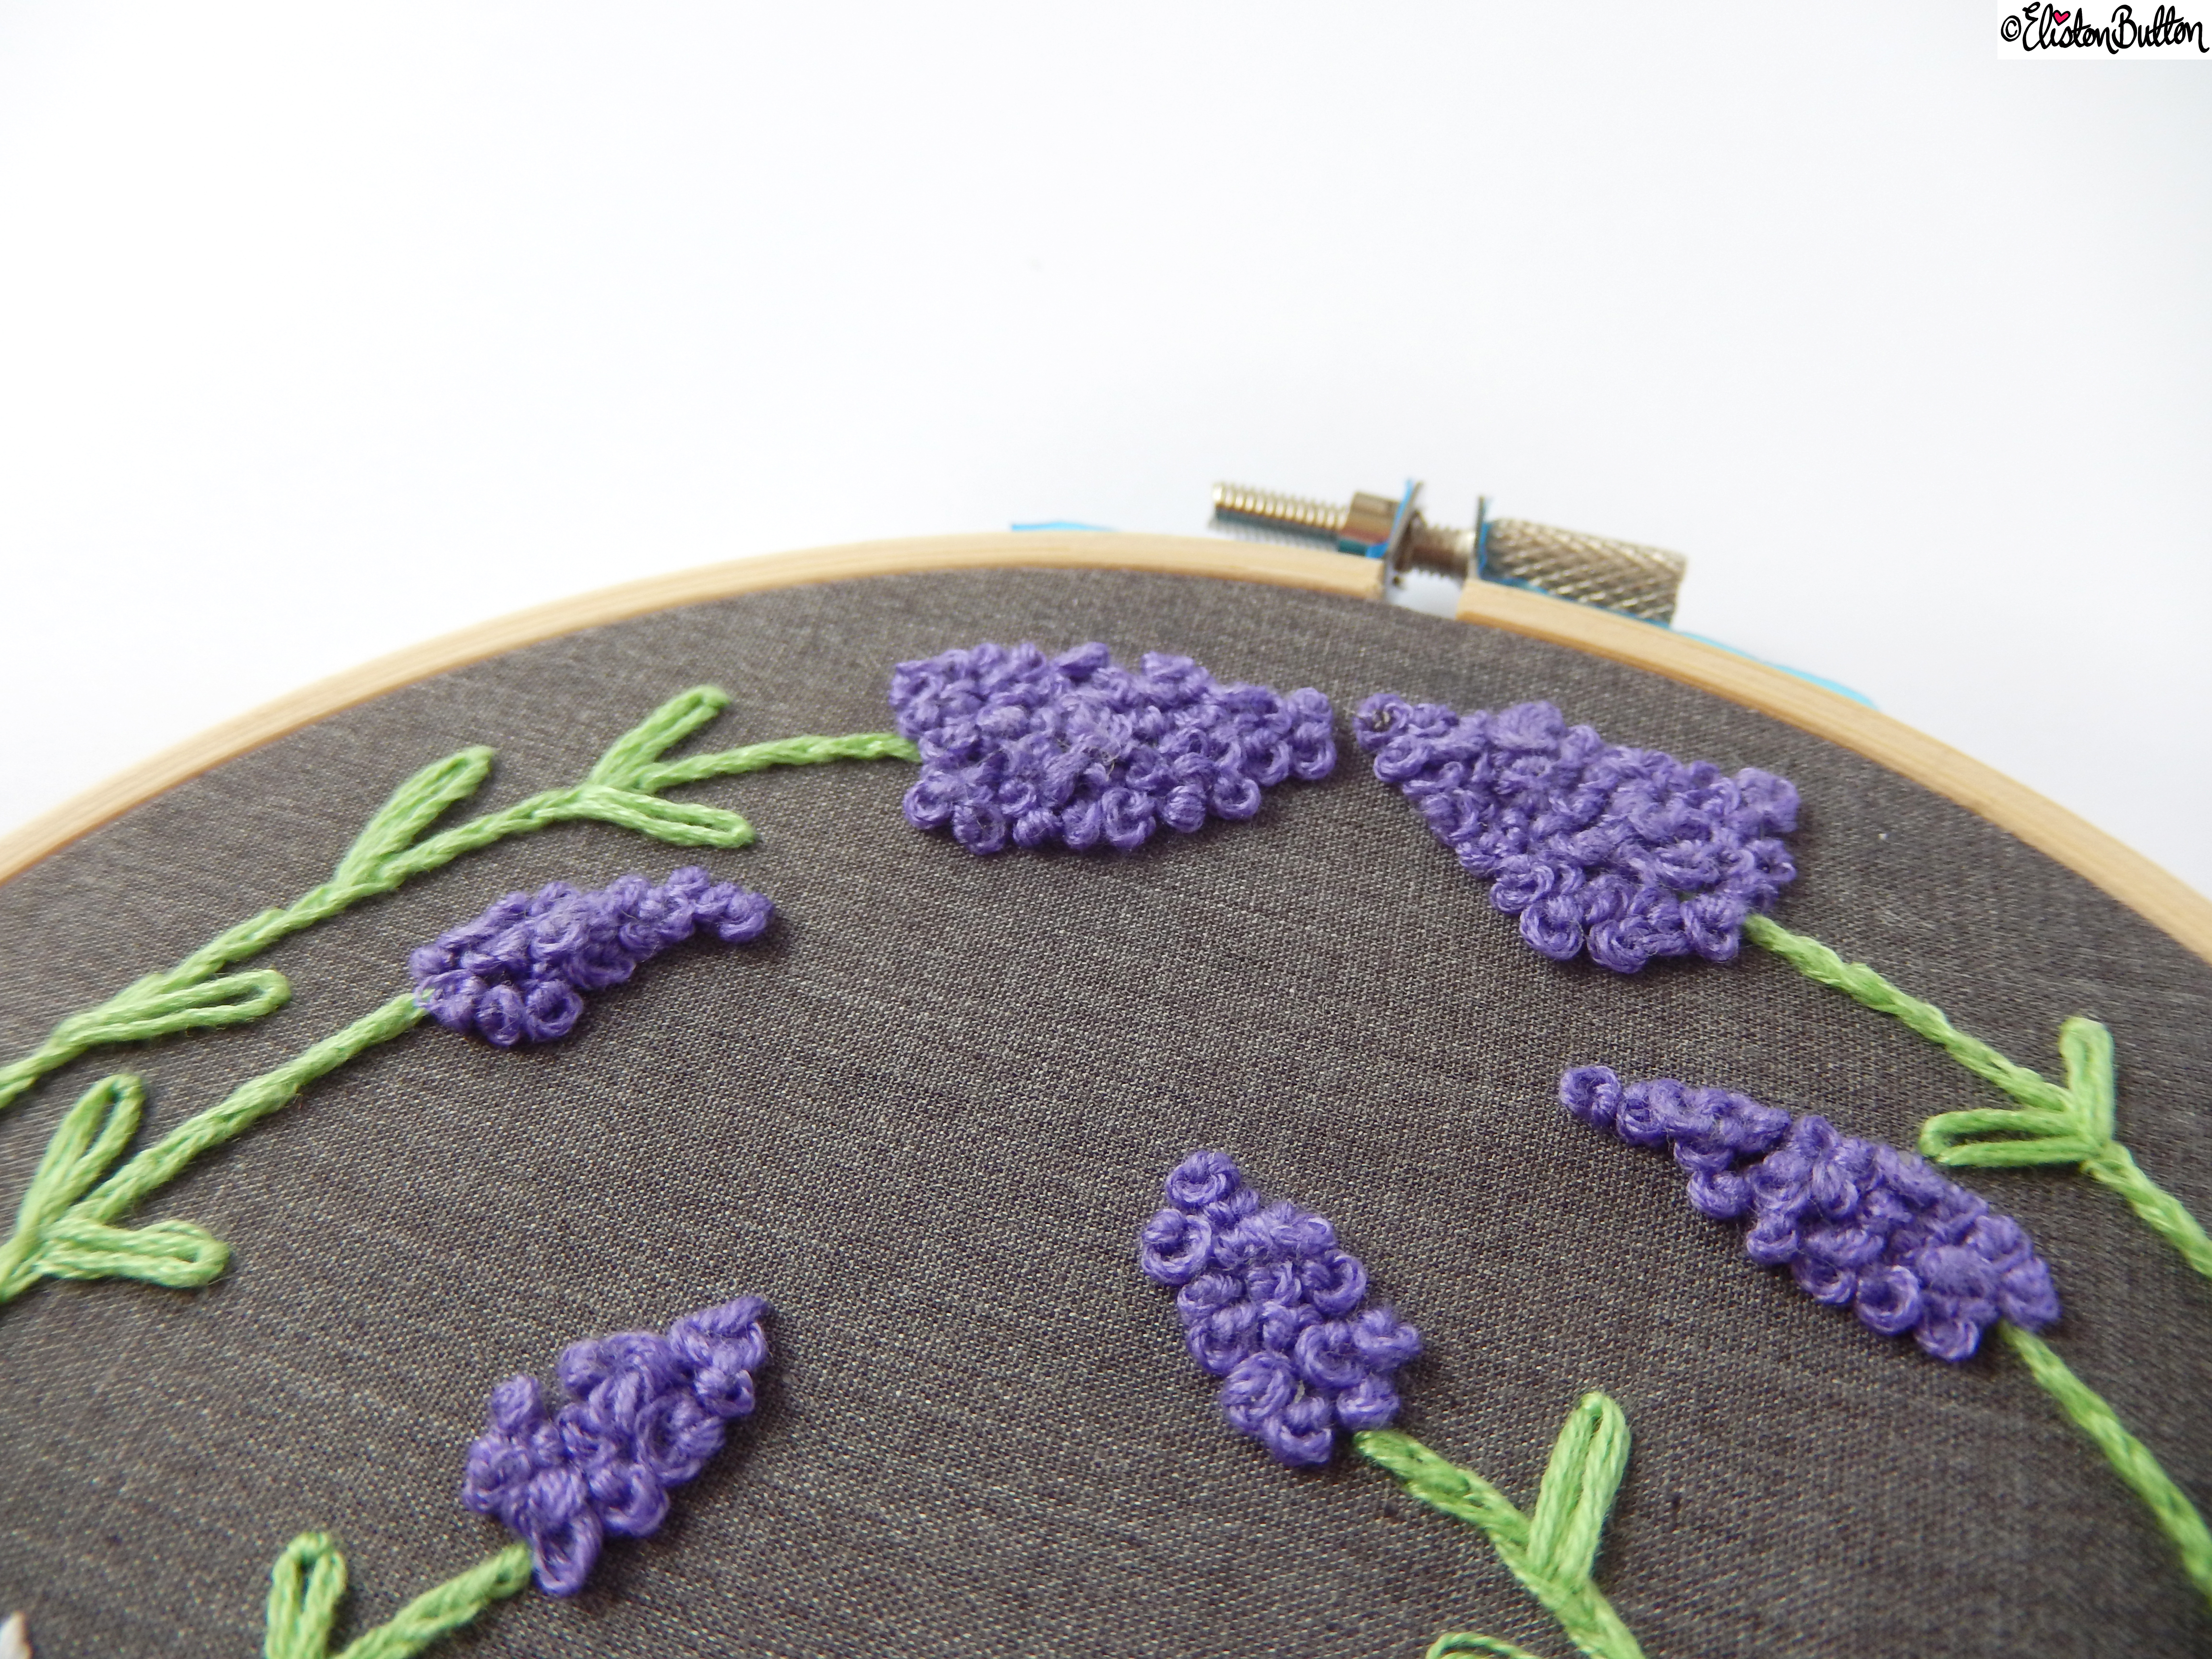 Bonjour French Inspired Embroidery Hoop Wall Art  (7) - Create 28 - No.28 - Embroidery Hoop Wall Art at www.elistonbutton.com - Eliston Button - That Crafty Kid – Art, Design, Craft & Adventure.